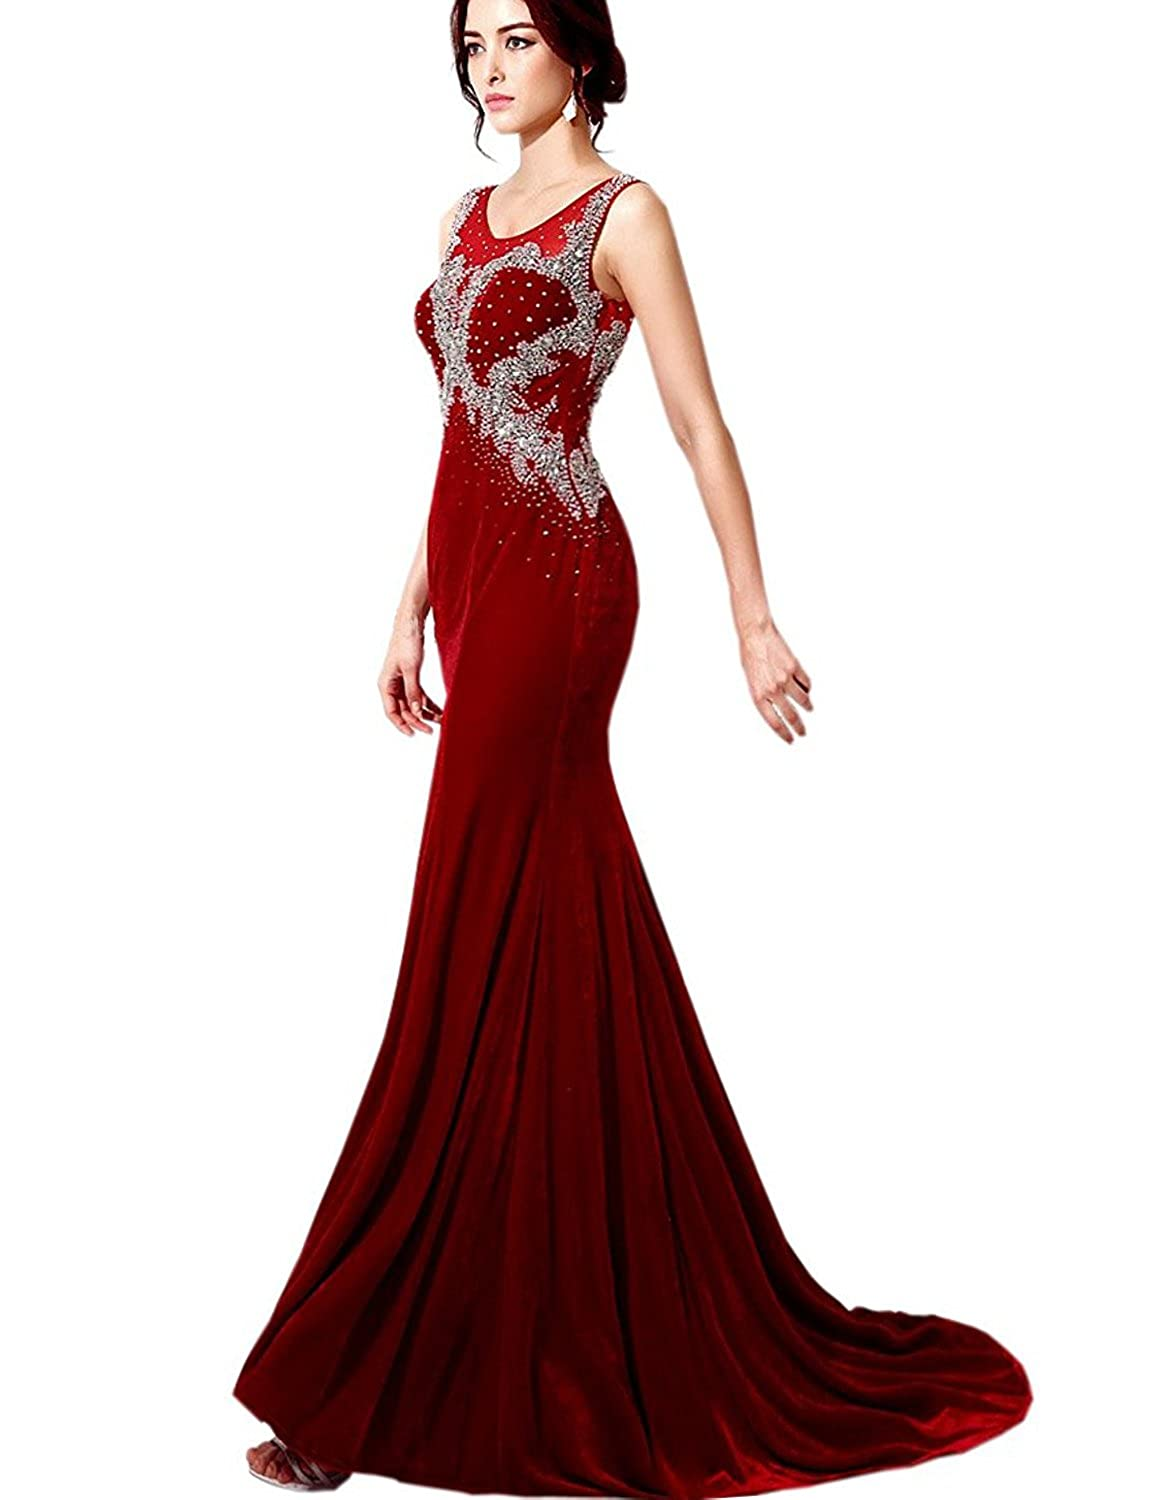 Belle House Mermaid Velvet Formal Evening Dress Celebrity Gown at ...